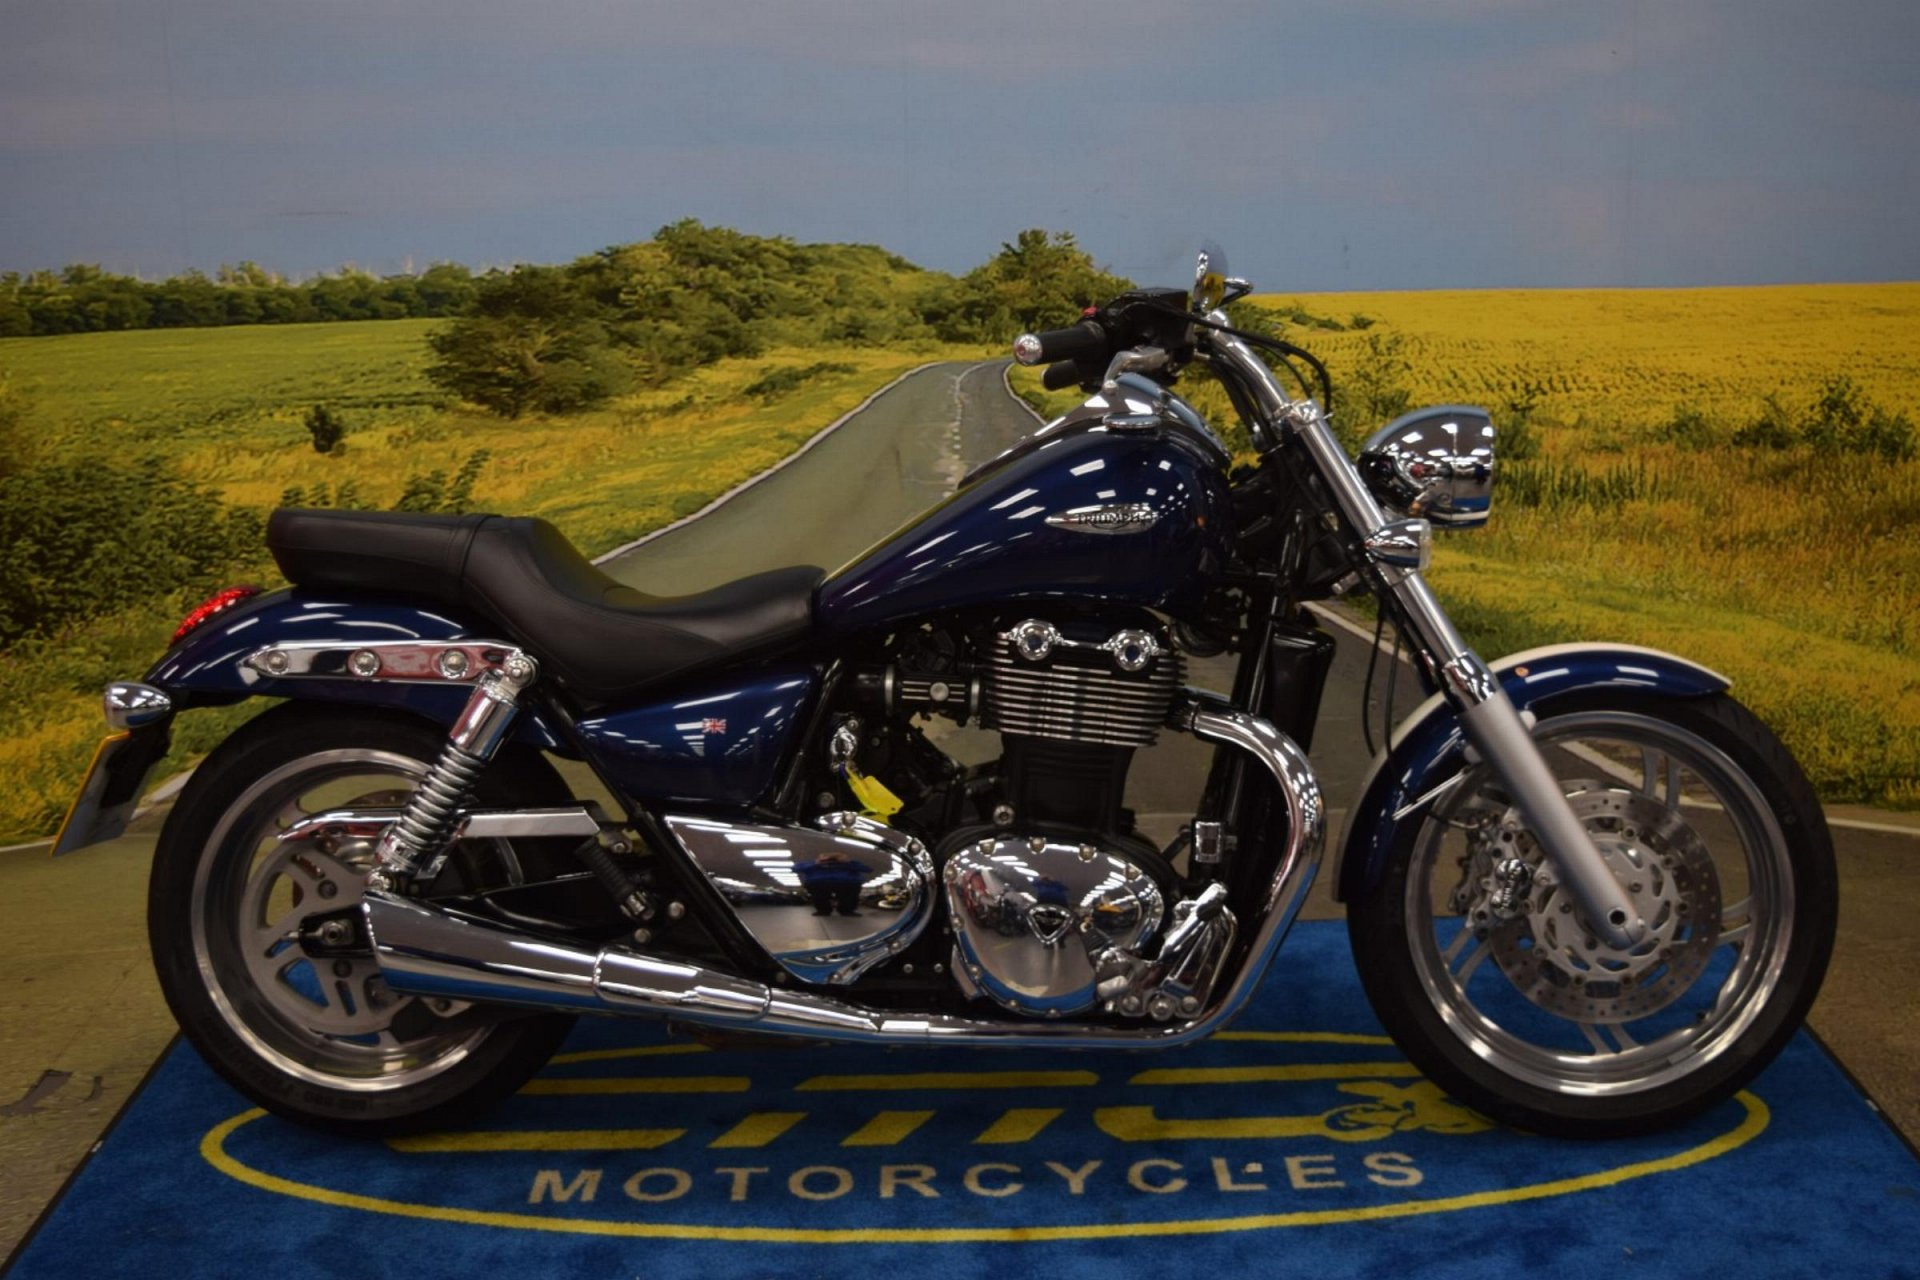 2009 Triumph Thunderbird 1600 for sale in Staffordshire